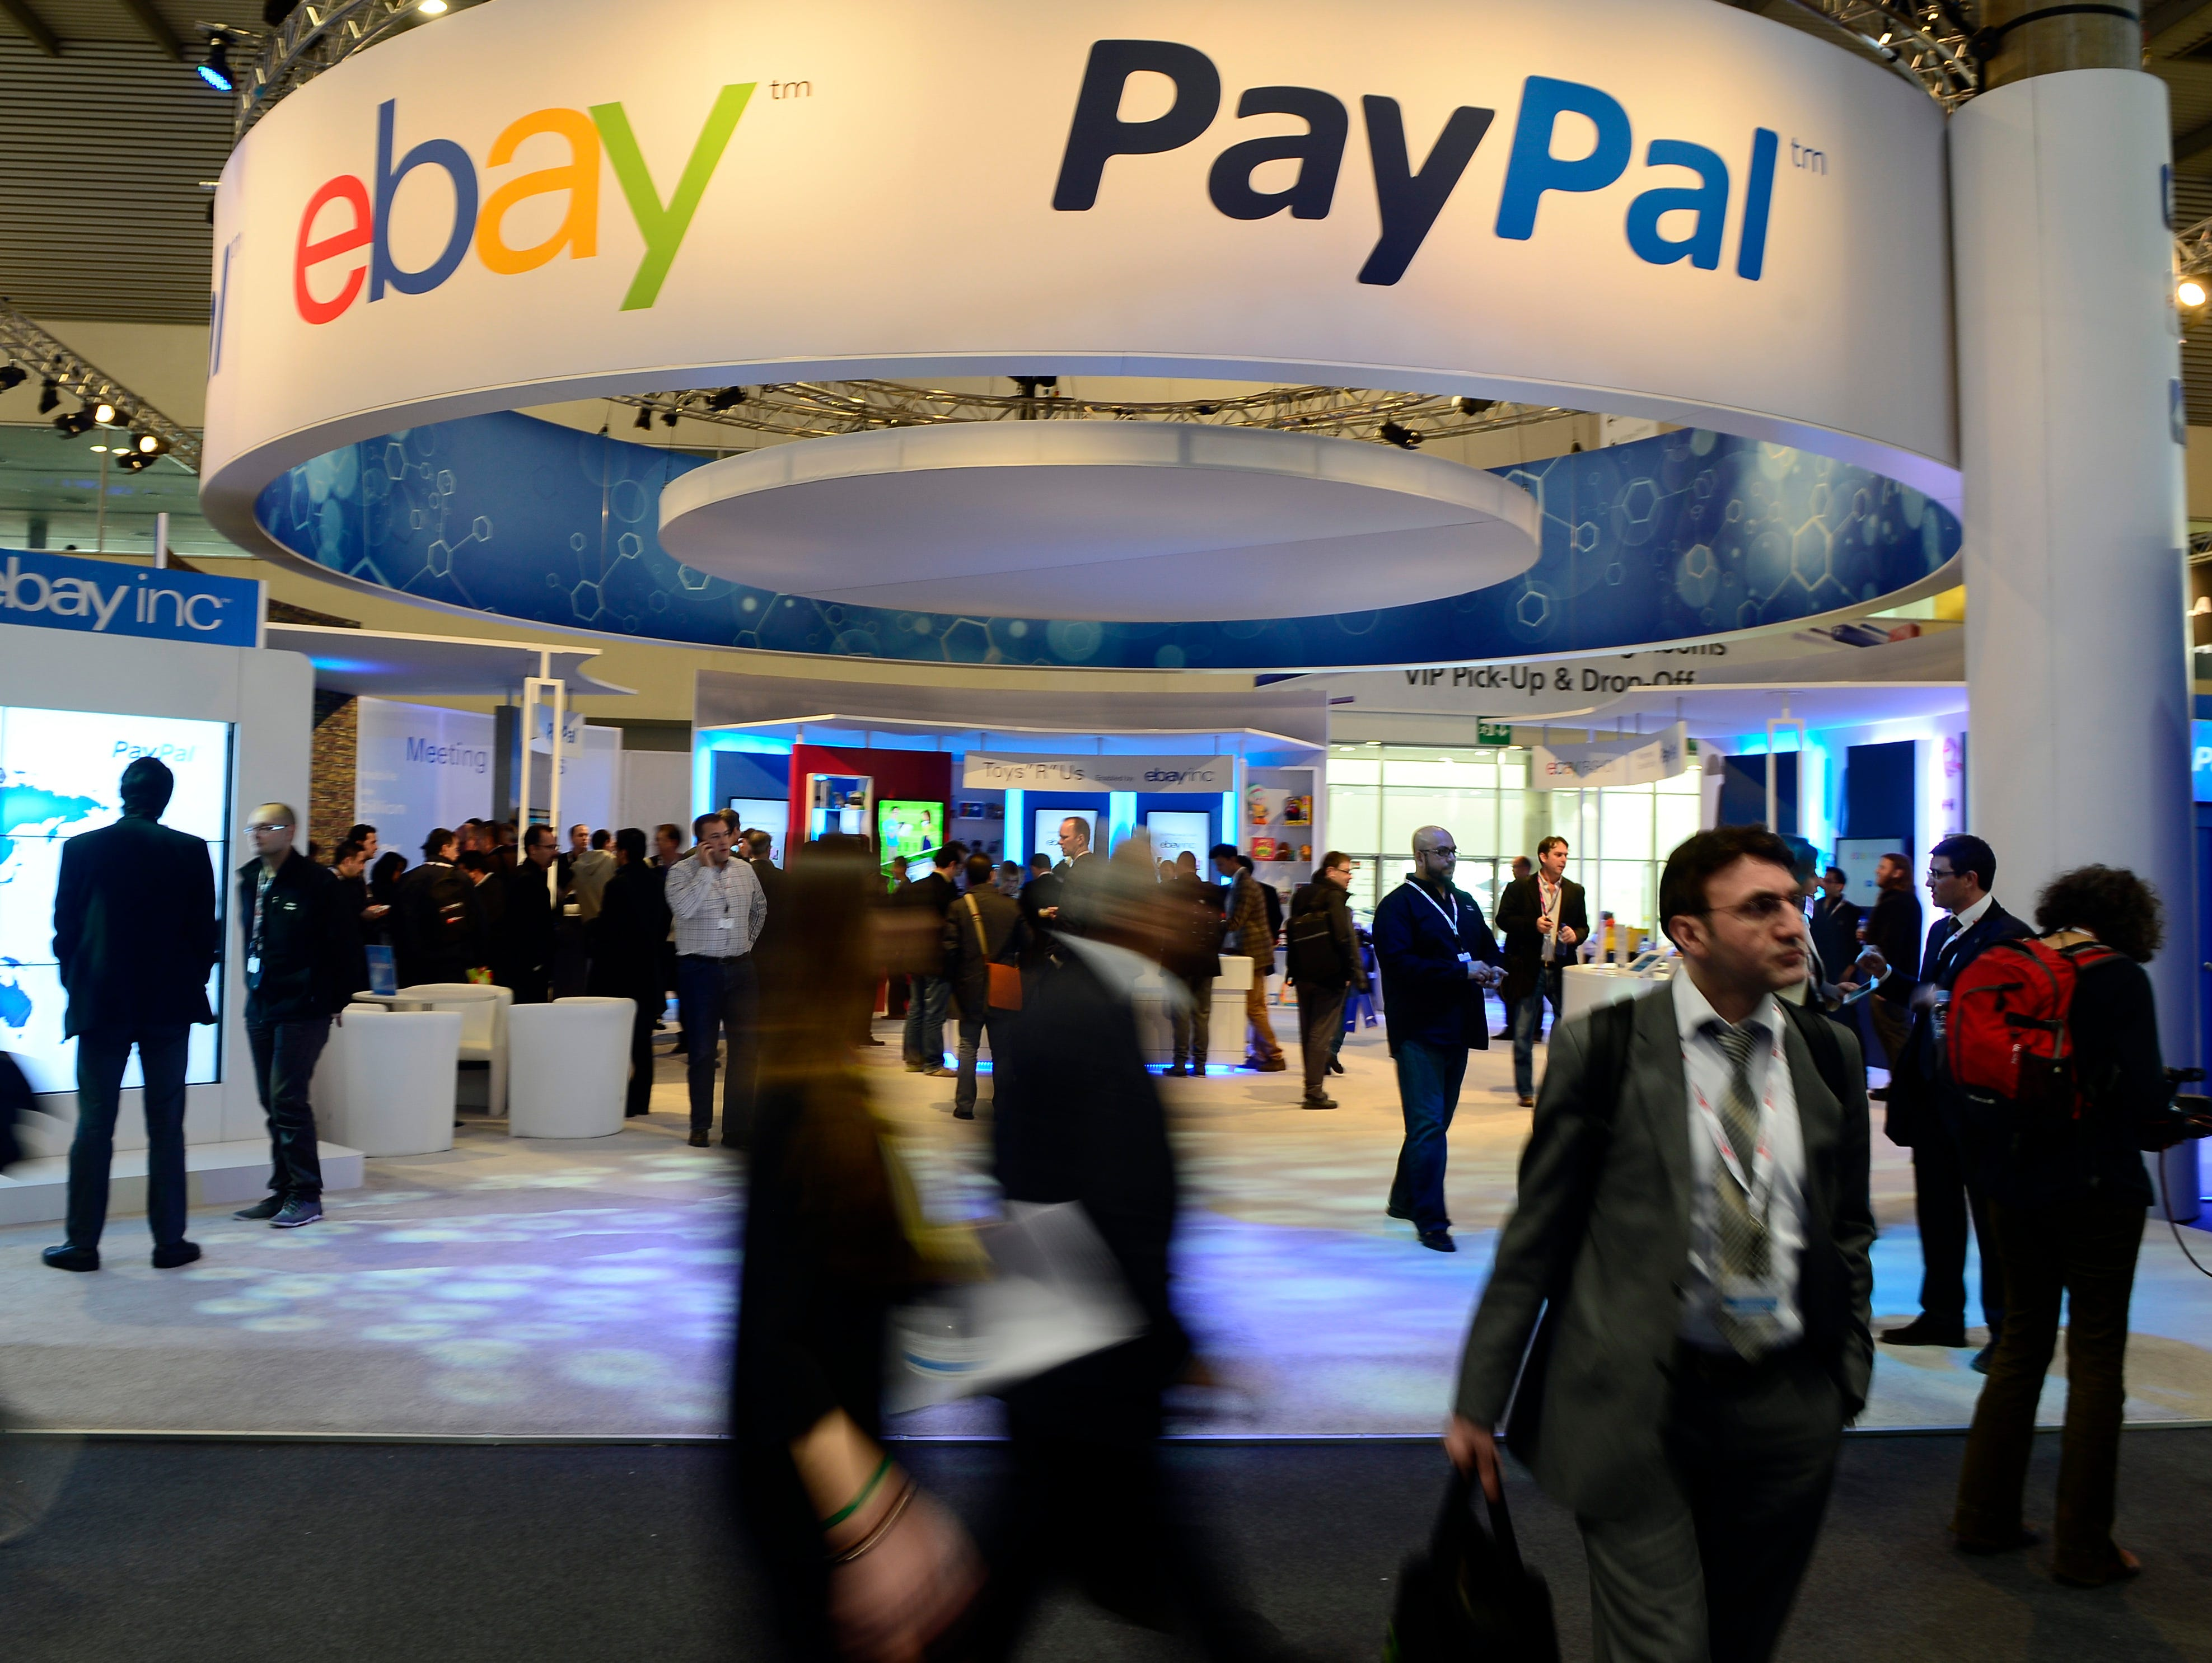 Attendees walk in front of an EBay and PayPal display area at the Mobile World Congress in 2013, the world's largest mobile phone trade show, in Barcelona, Spain.